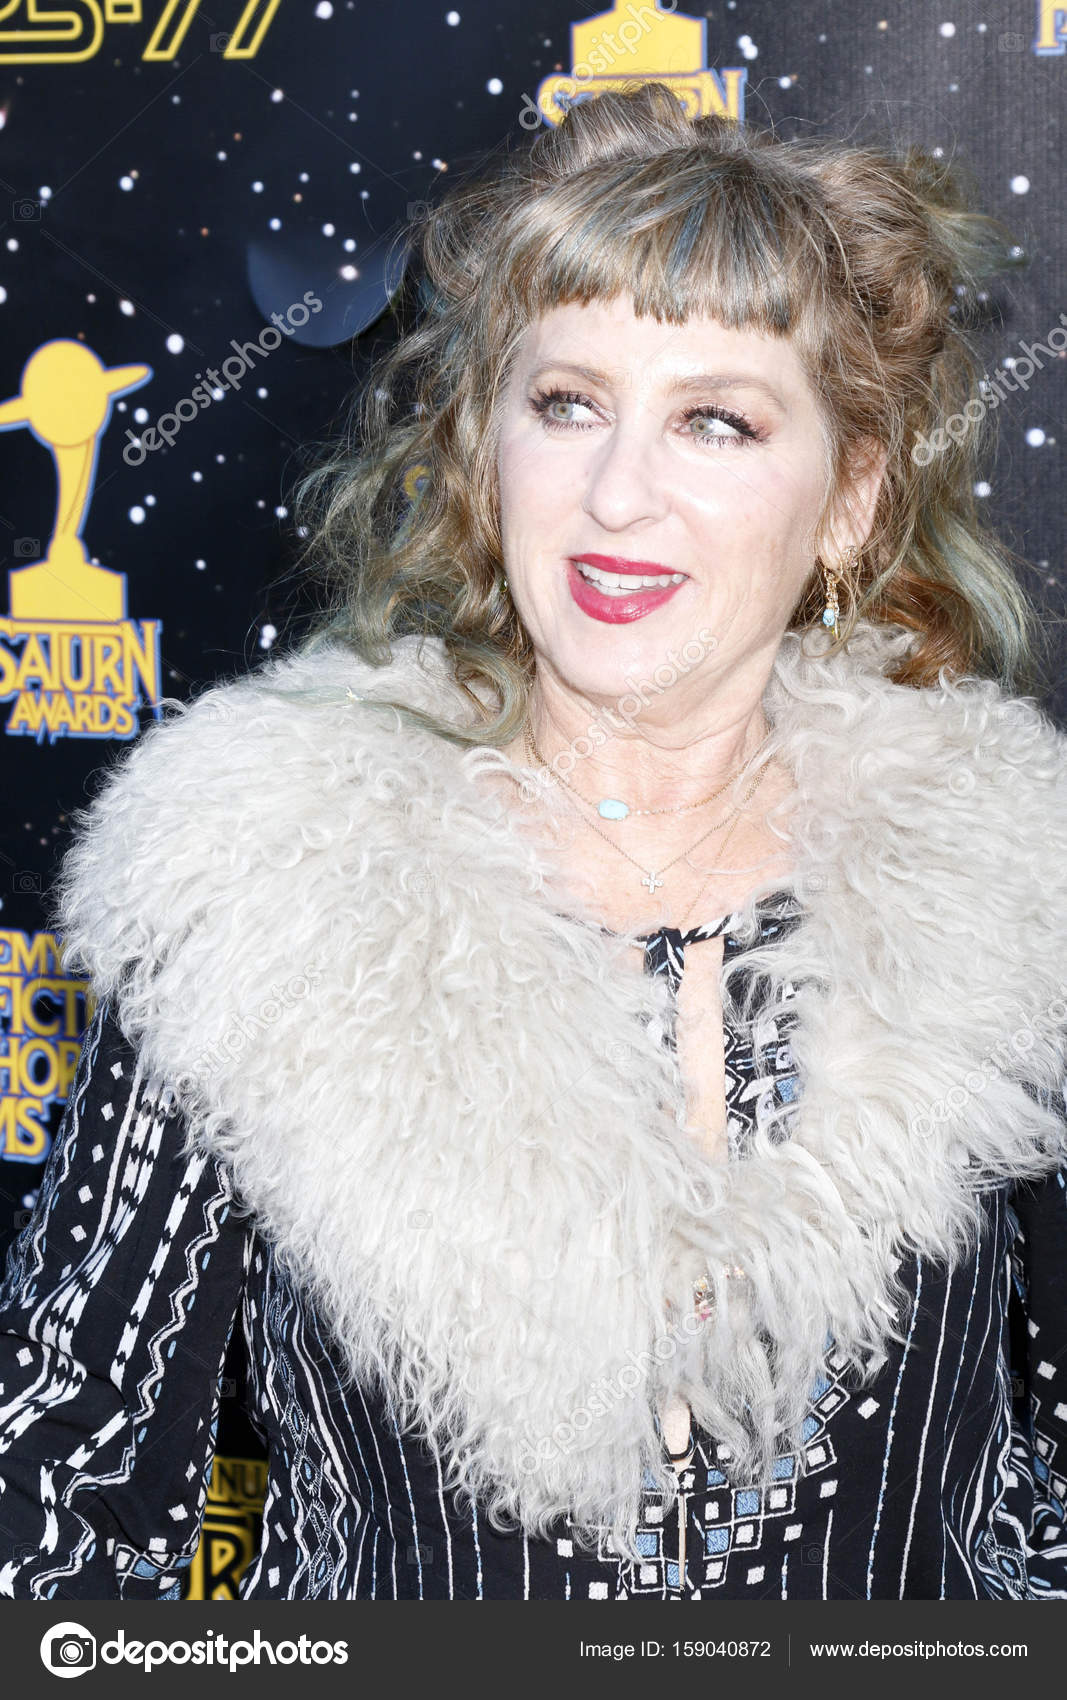 kimmy robertson movies and tv shows